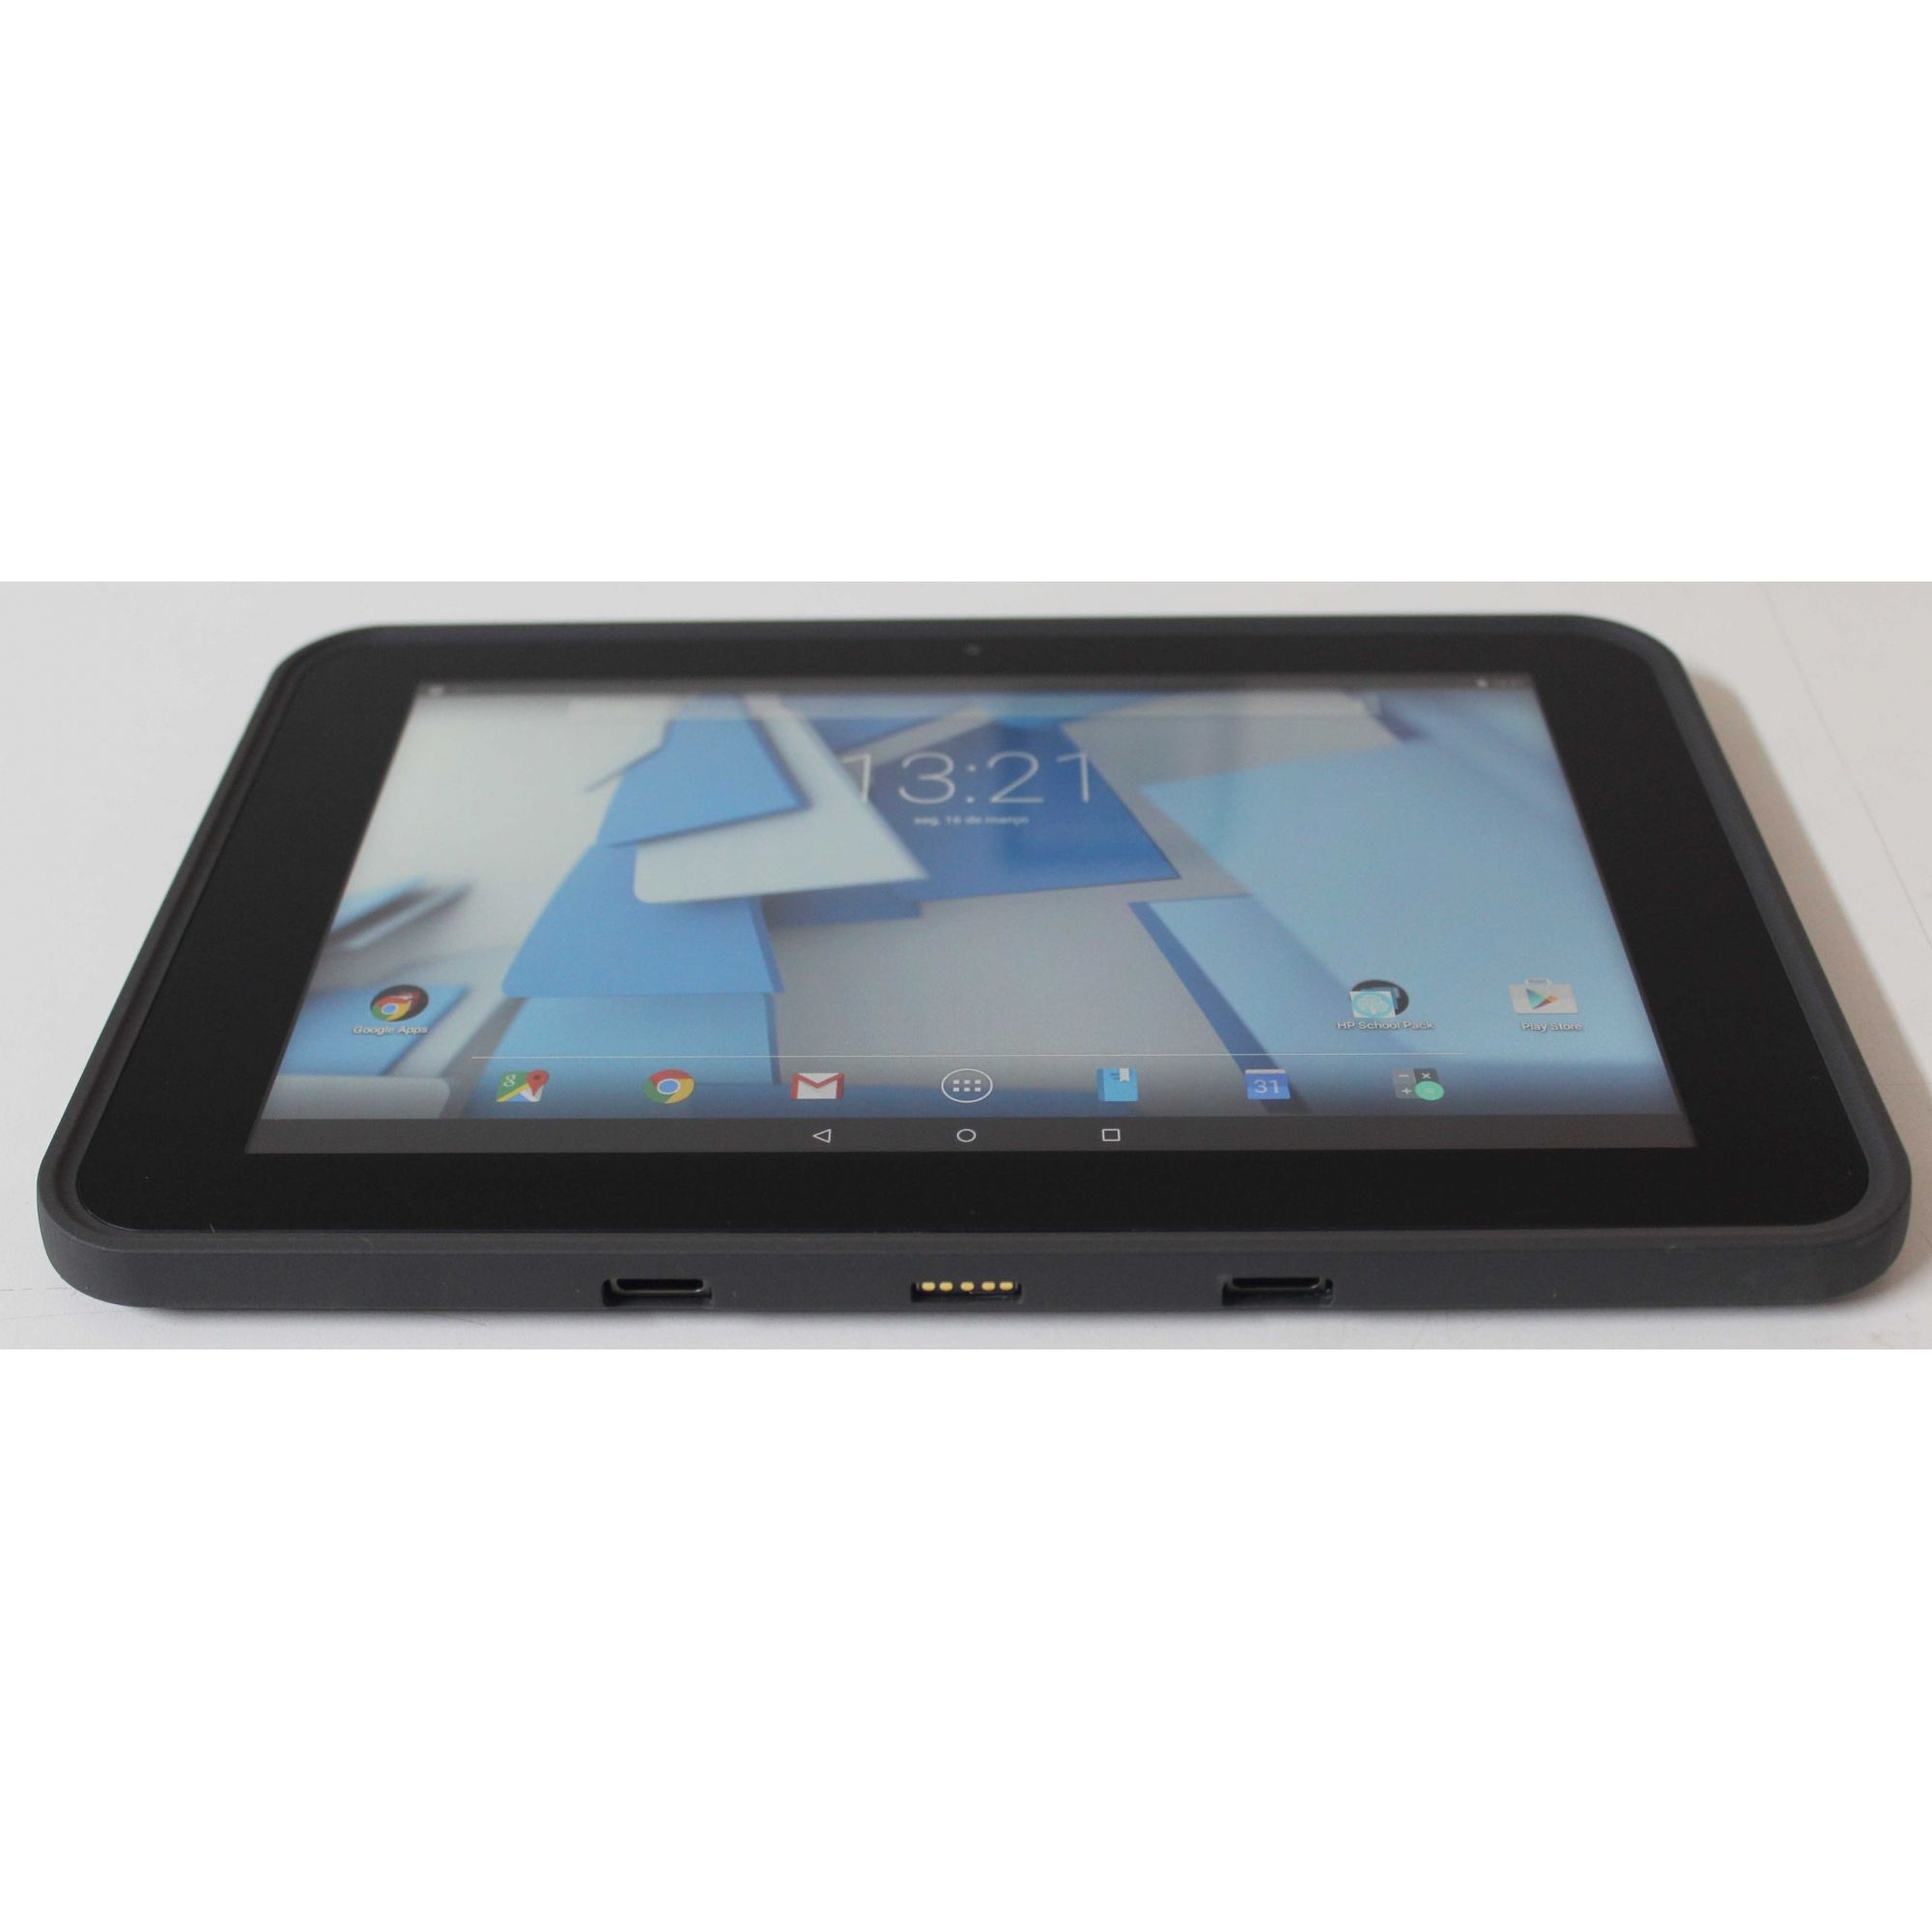 "Tablet HP Pro Slate 10 EE G1 10.1"" Intel Atom 16GB WIFI"